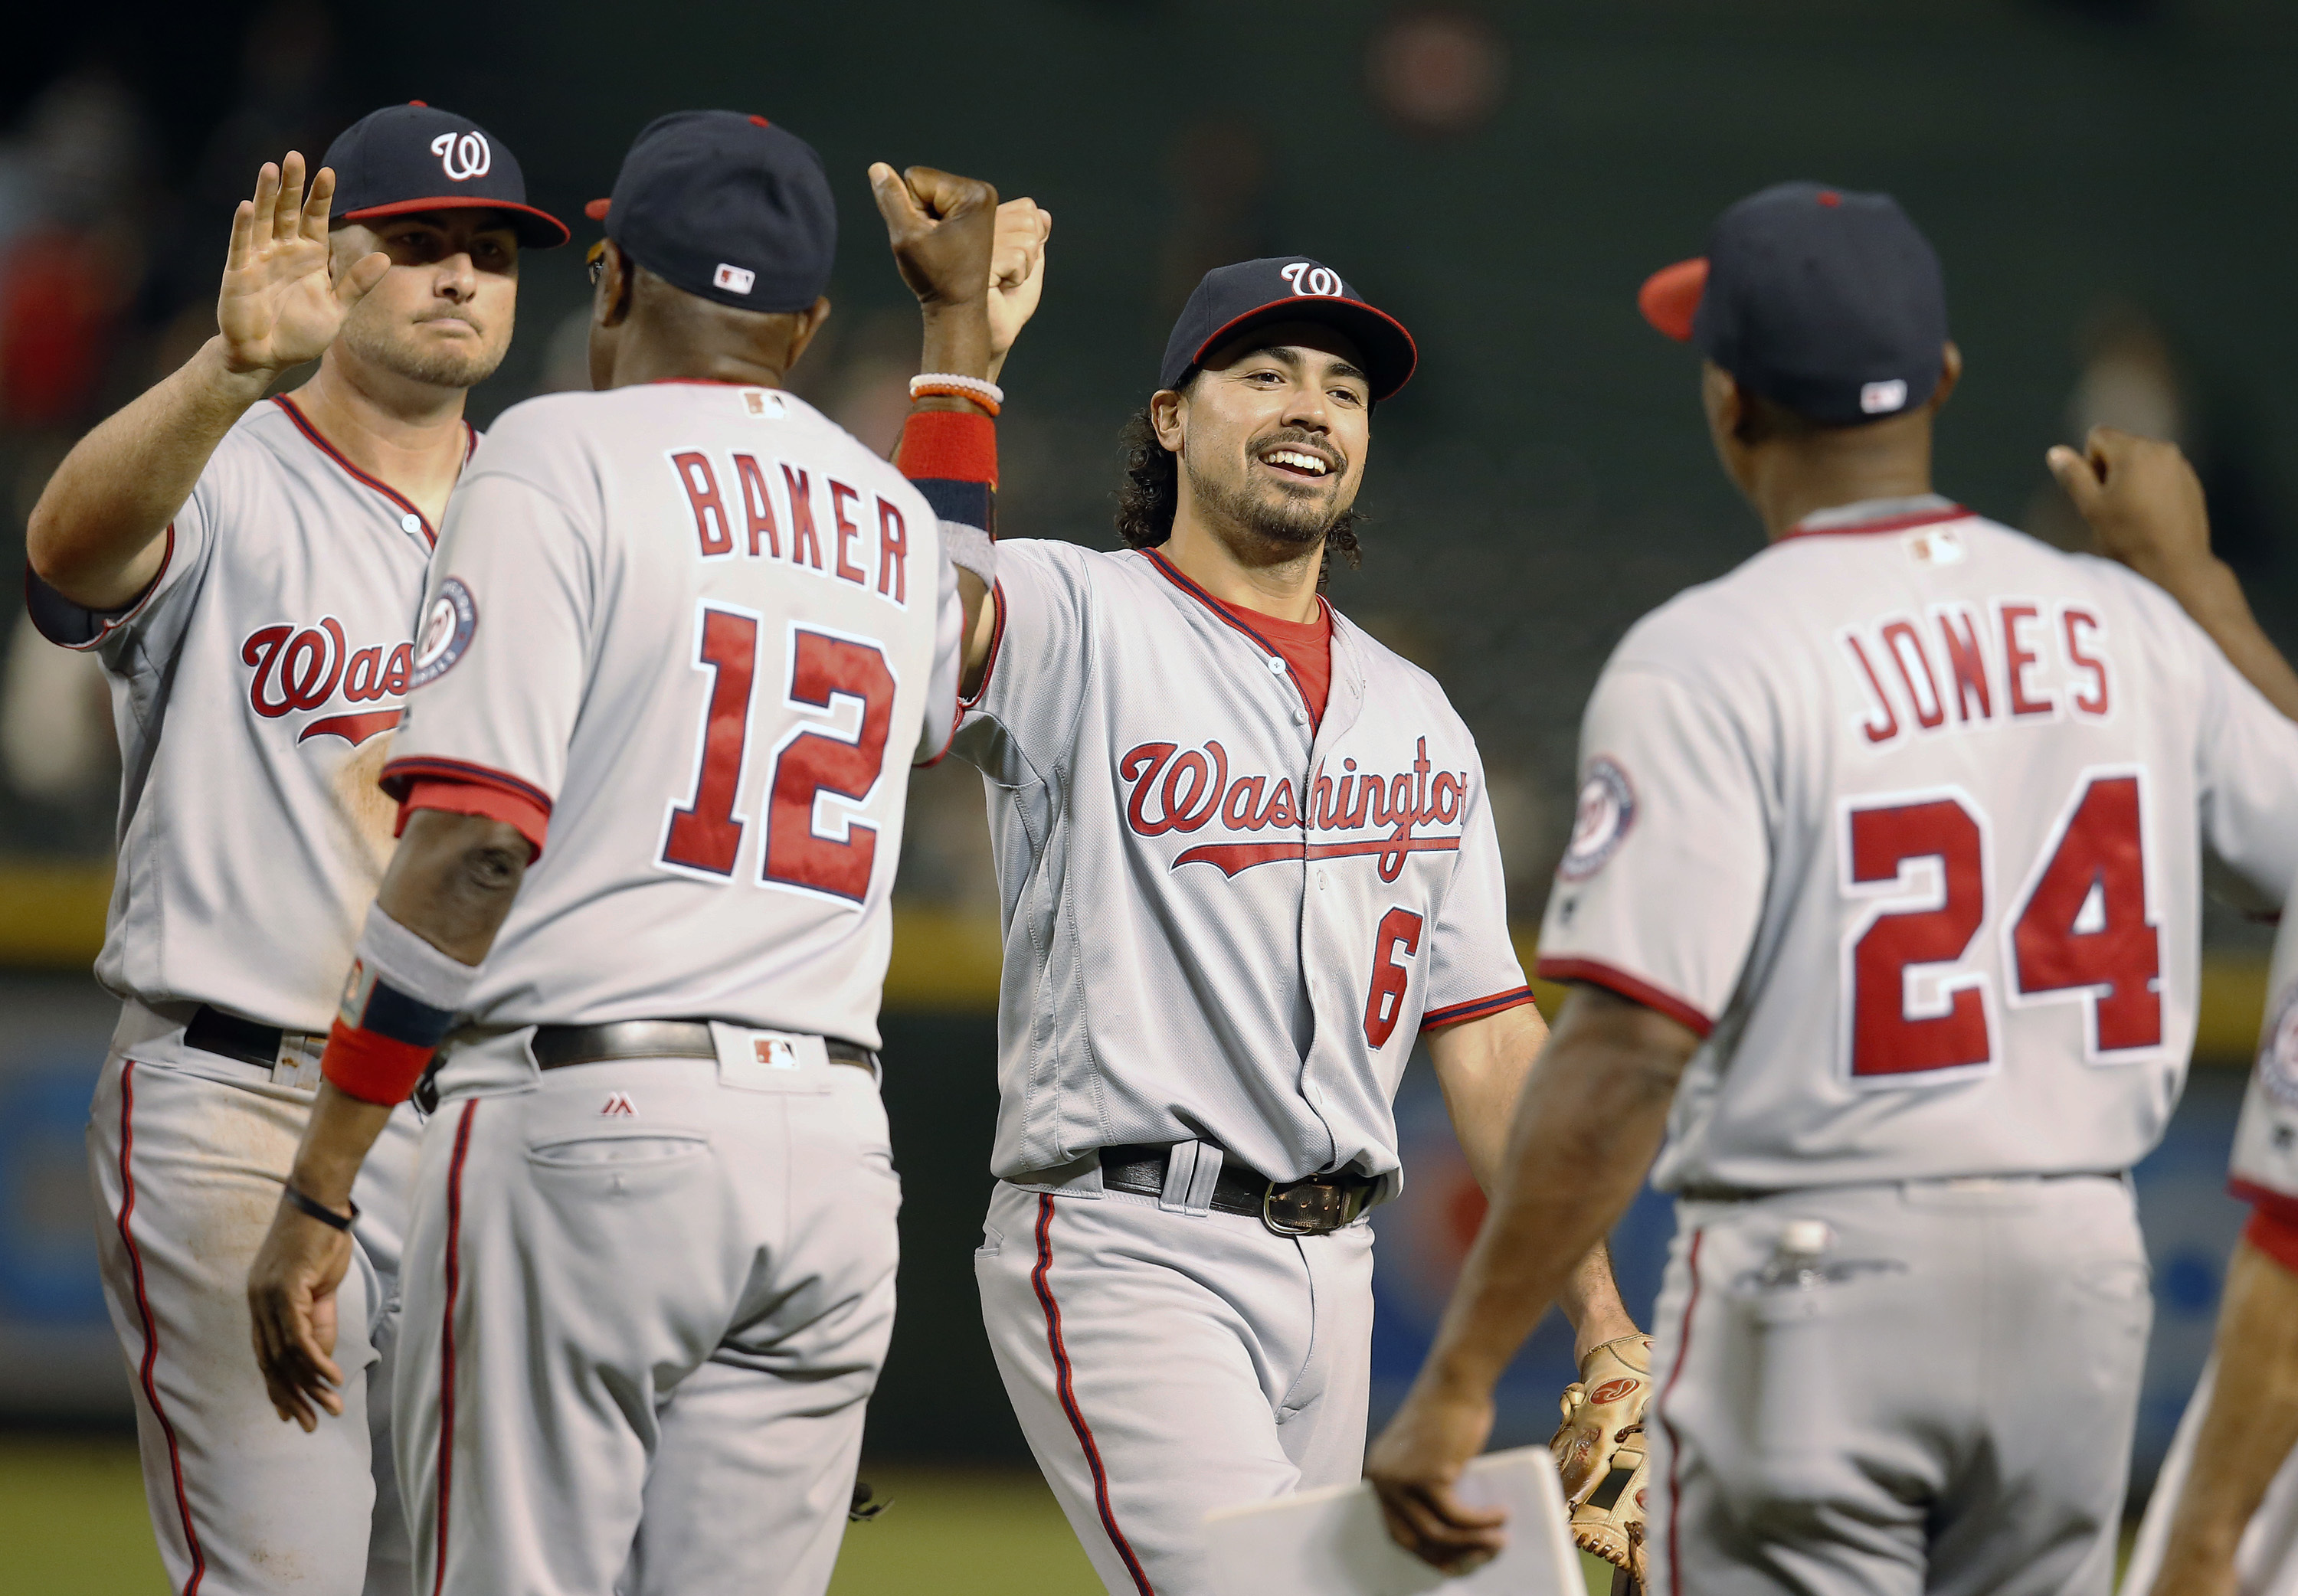 Washington Nationals' Anthony Rendon (6) celebrates with Dusty Baker (12) and Jacque Jones after the Nationals defeated the Arizona Diamondbacks 10-4 during a baseball game, Tuesday, Aug. 2, 2016, in Phoenix. (AP Photo/Rick Scuteri)